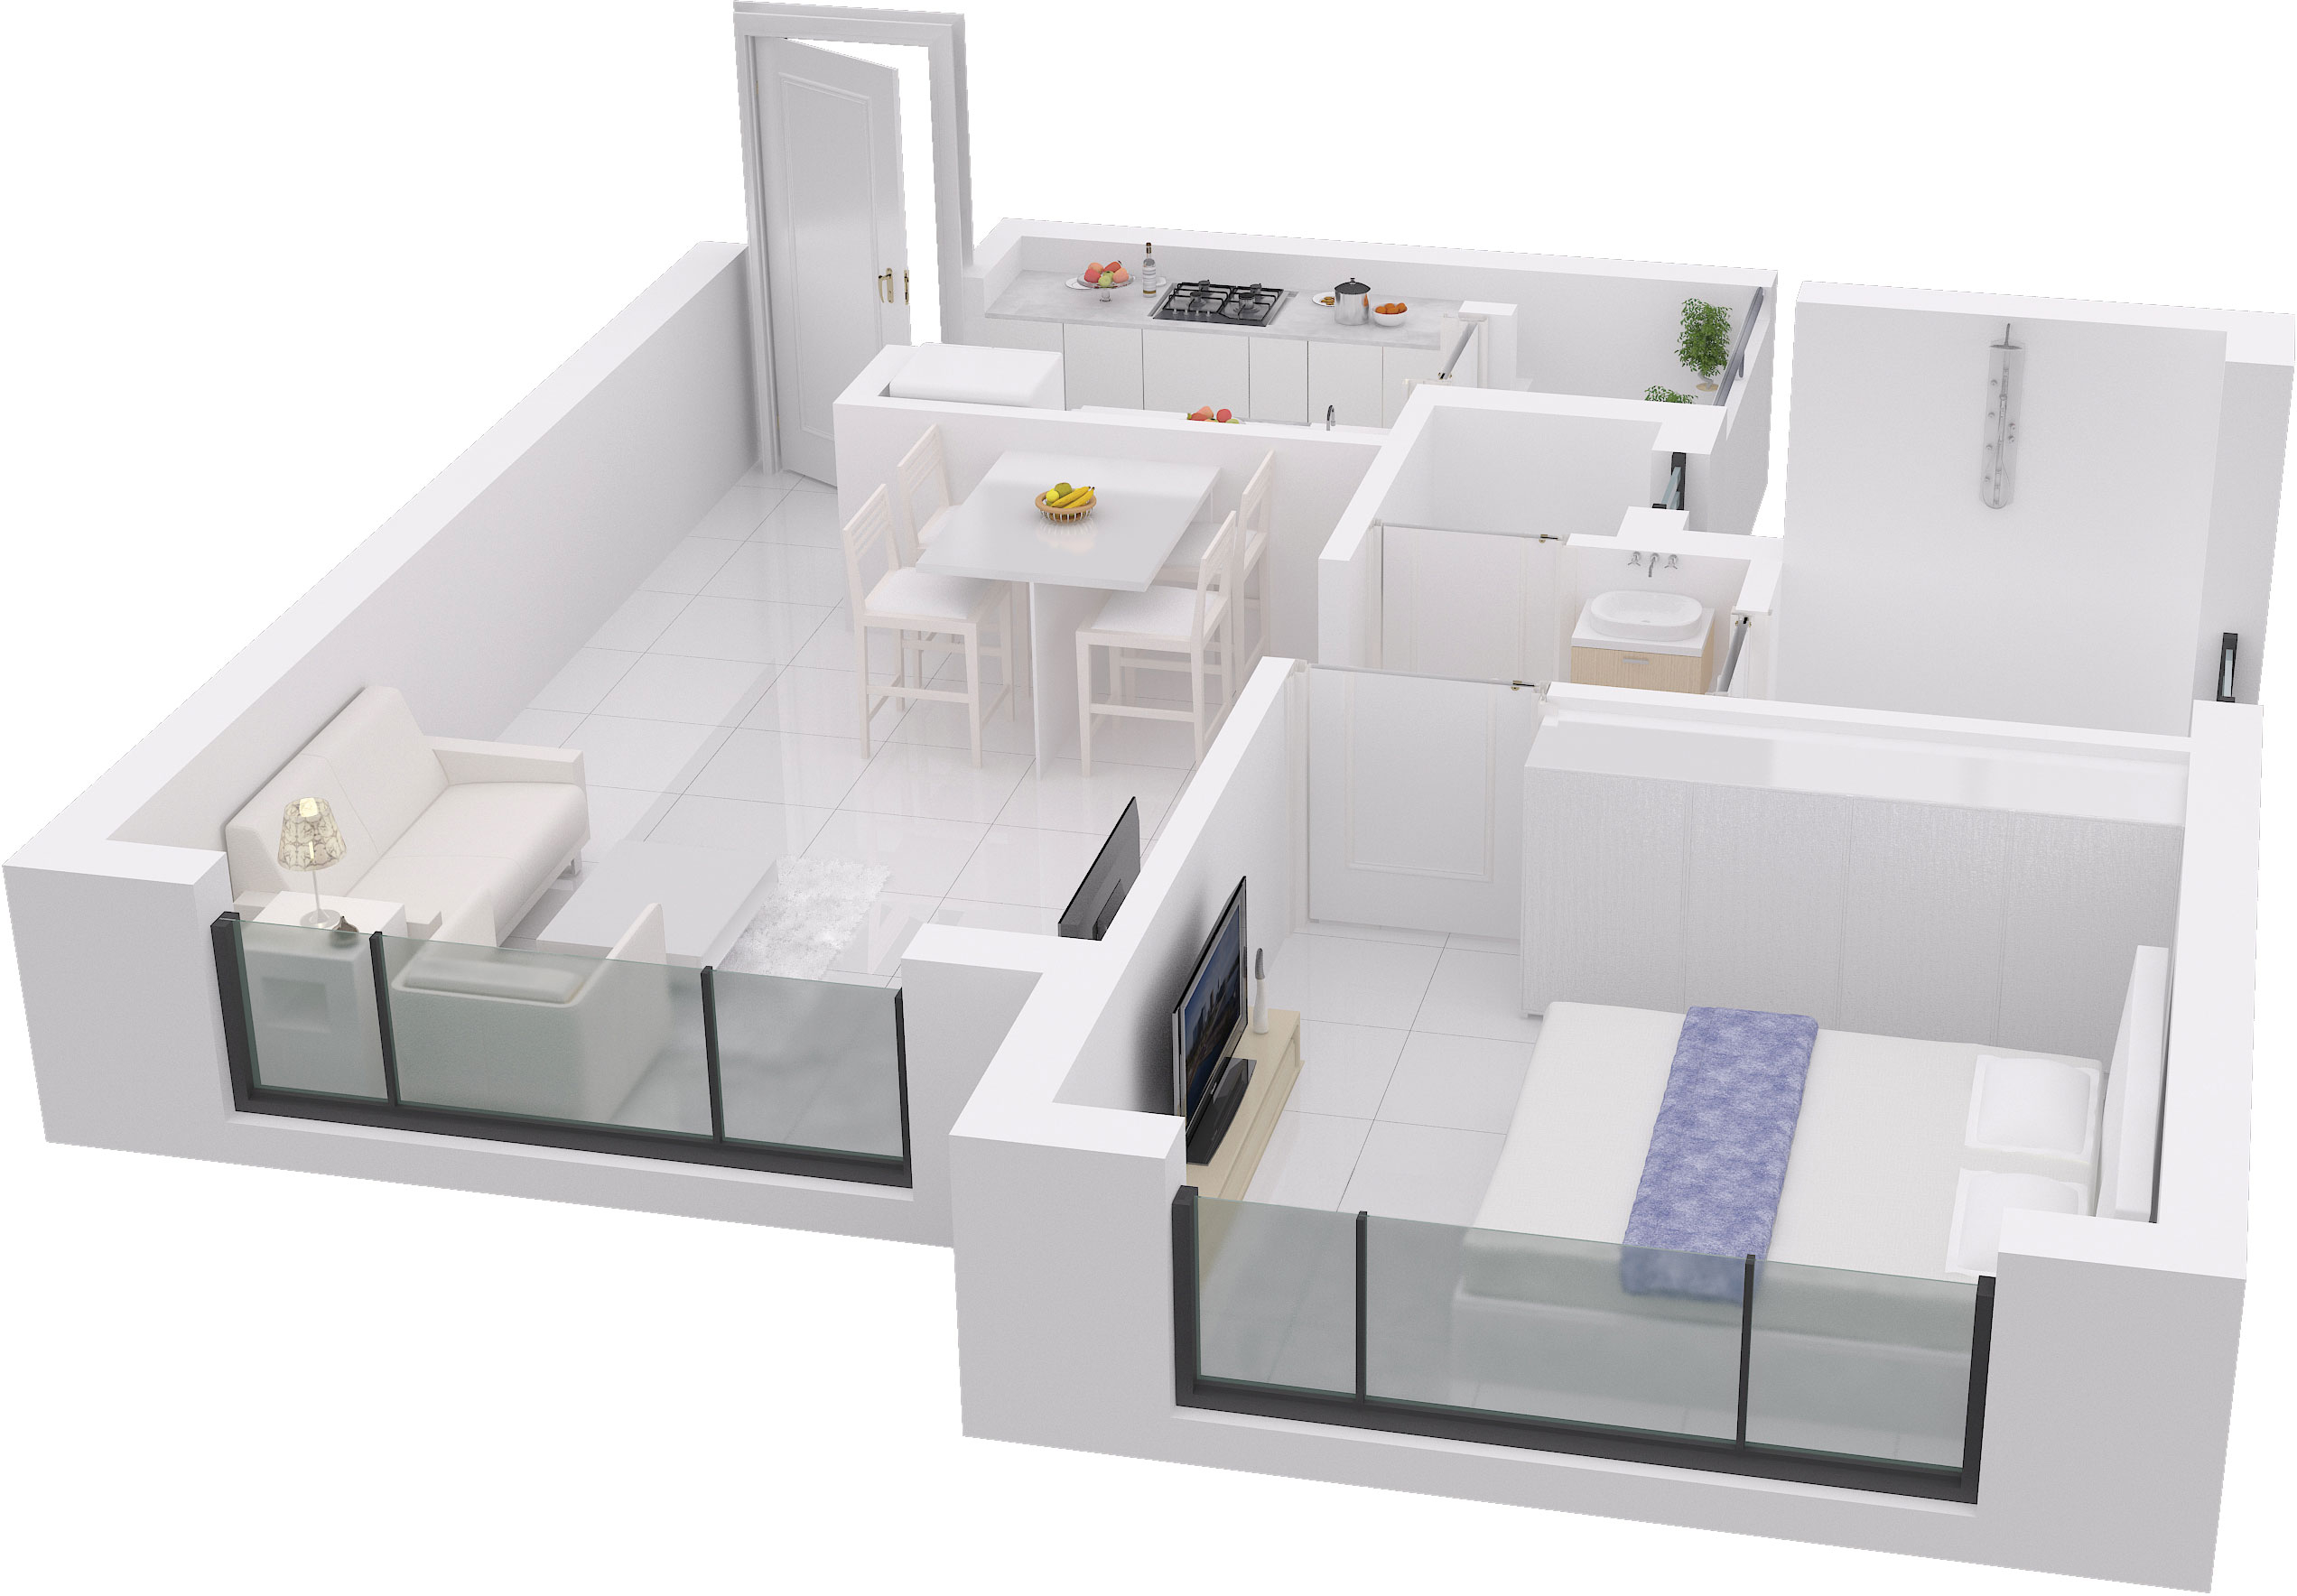 600 sq ft house plan 3d arts